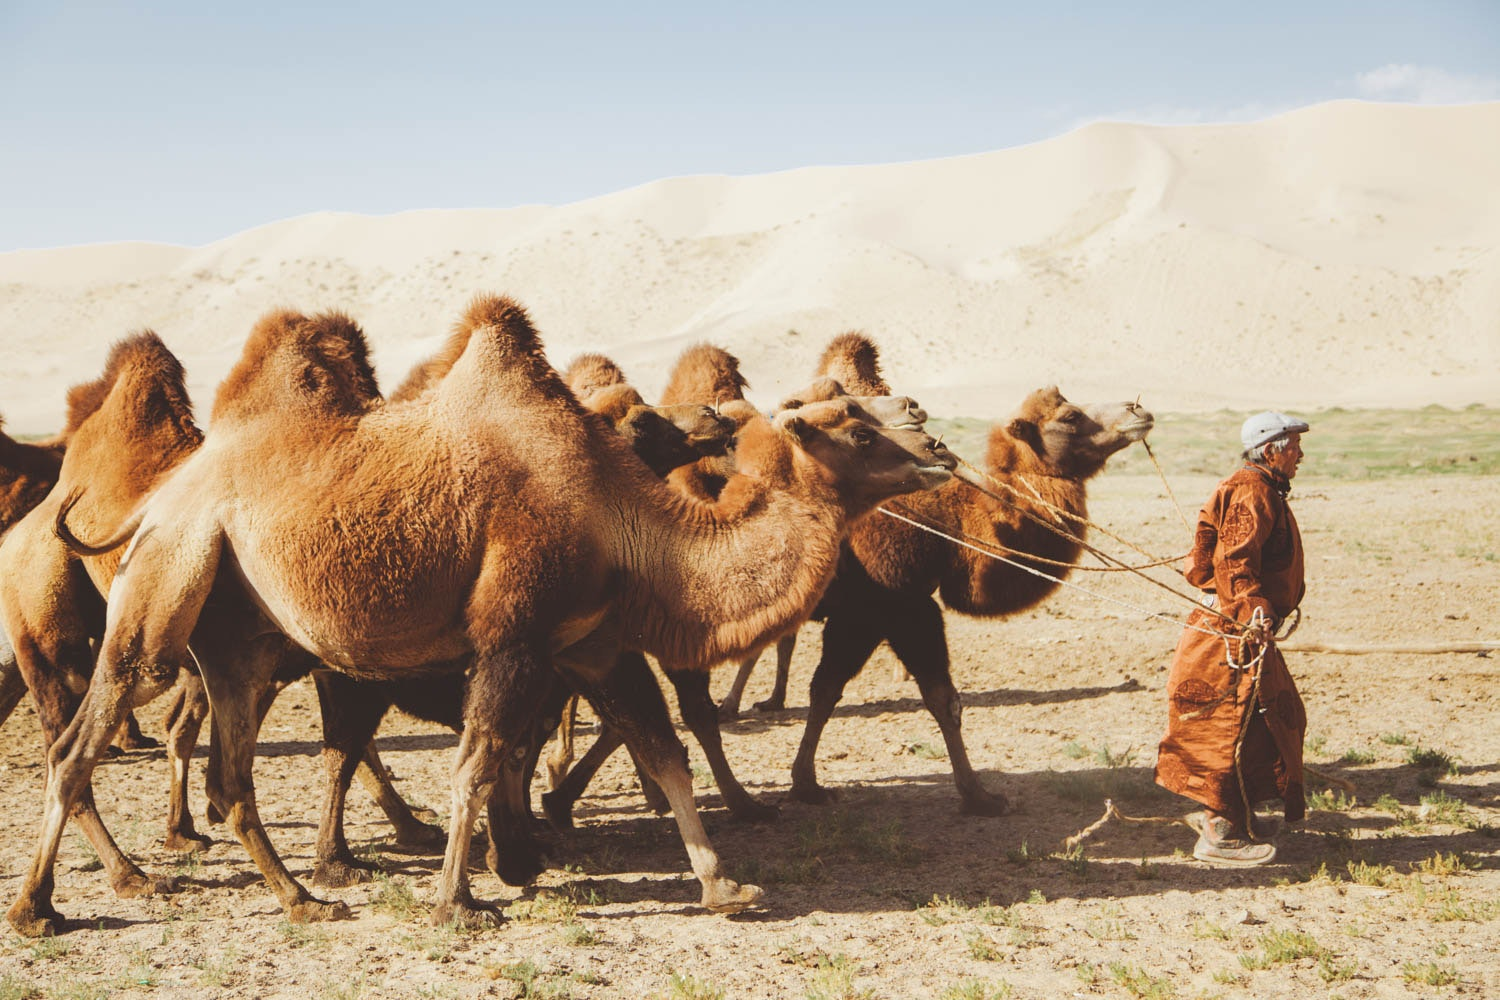 A cluster of camels at the Khongor Dunes